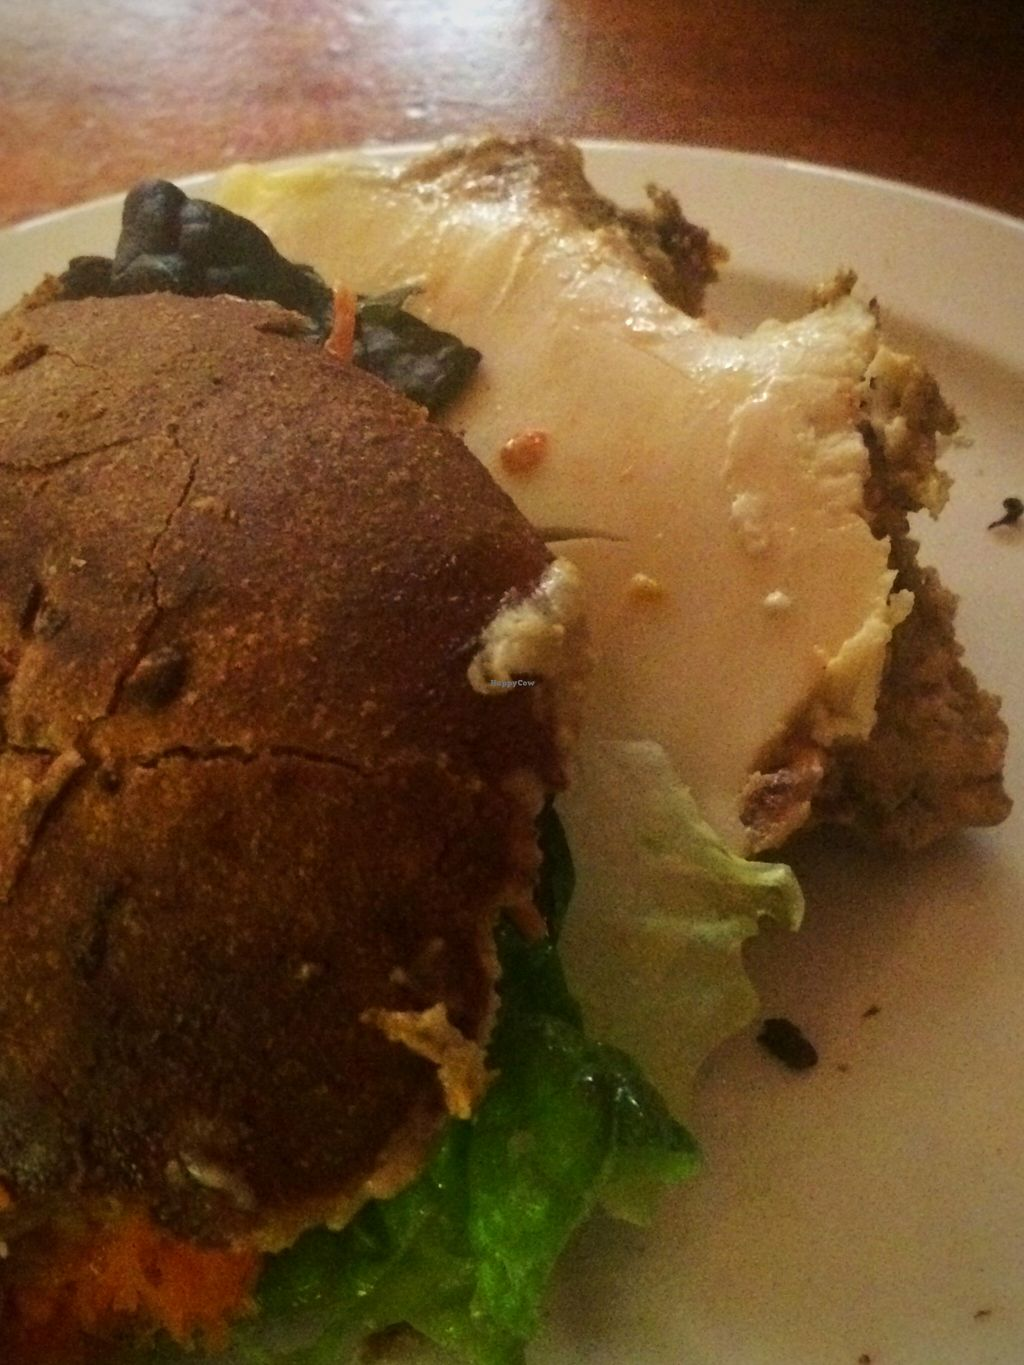 """Photo of Follow Your Heart Restaurant and Market  by <a href=""""/members/profile/serrarose"""">serrarose</a> <br/>Nutburgar Supreme (so yummy) <br/> December 27, 2015  - <a href='/contact/abuse/image/1609/130044'>Report</a>"""